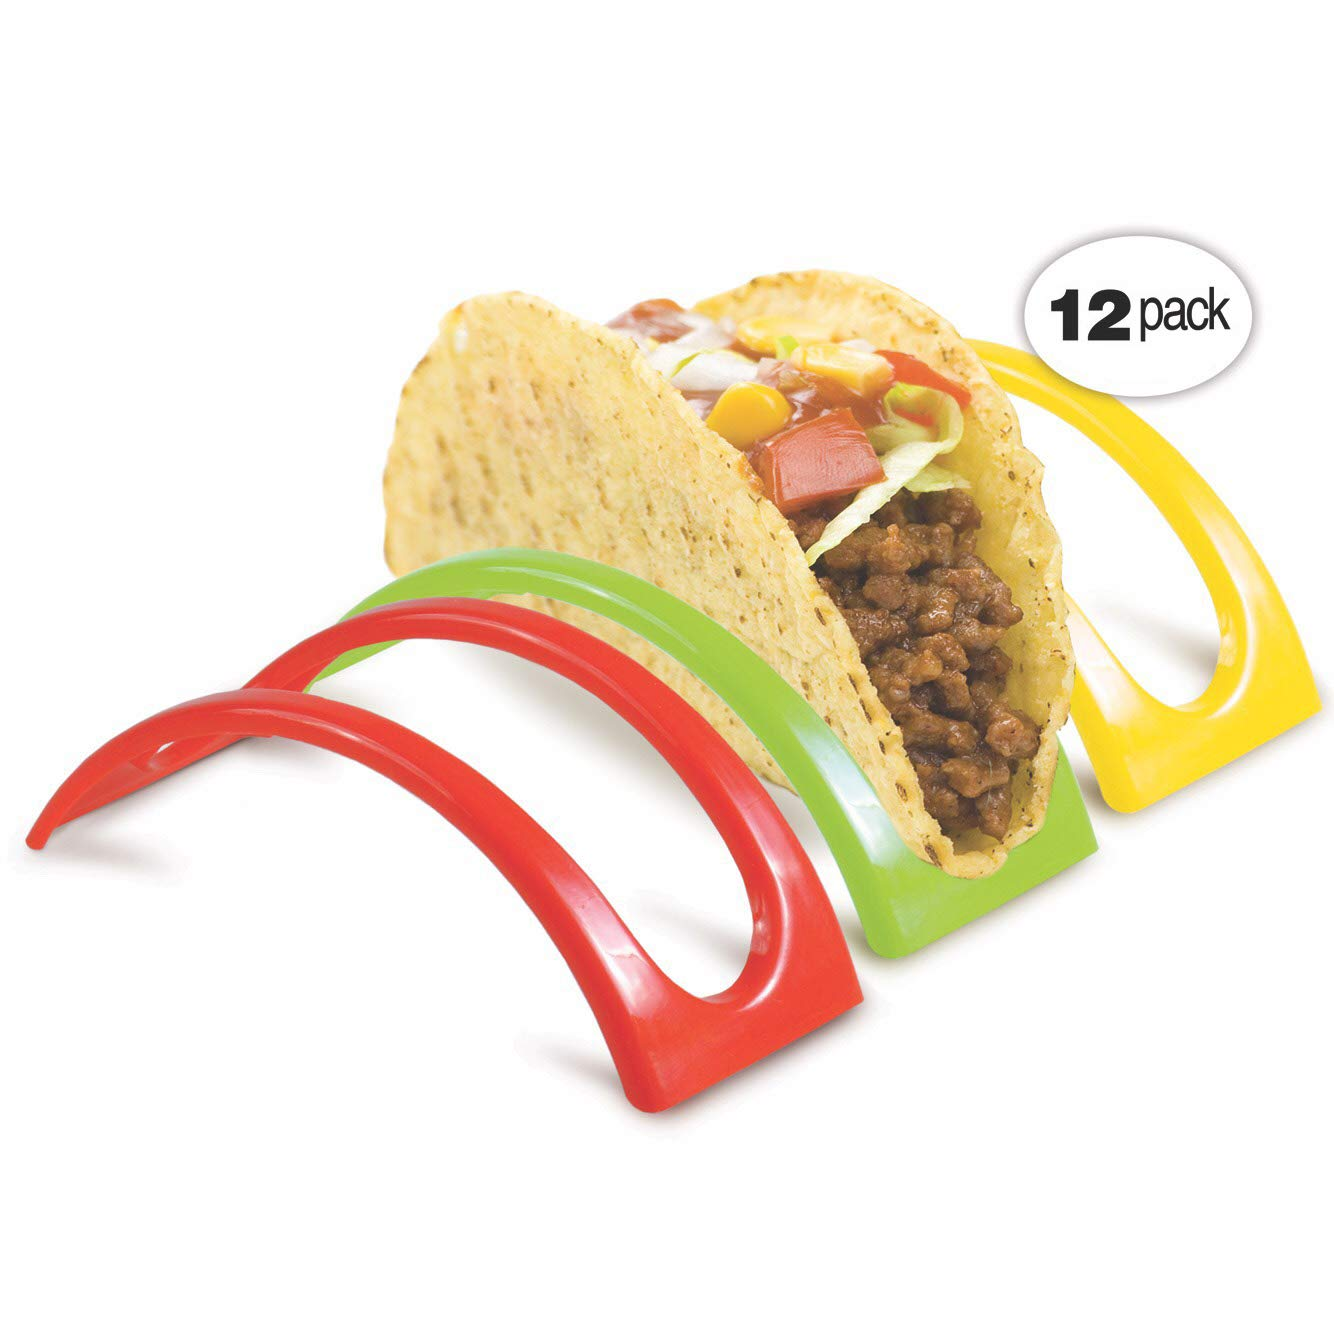 Taco Holders Bright Cheerful Colors of Green, Red, and Yellow with Set Of Four Each, Stackable To Maximize Space TacoWize